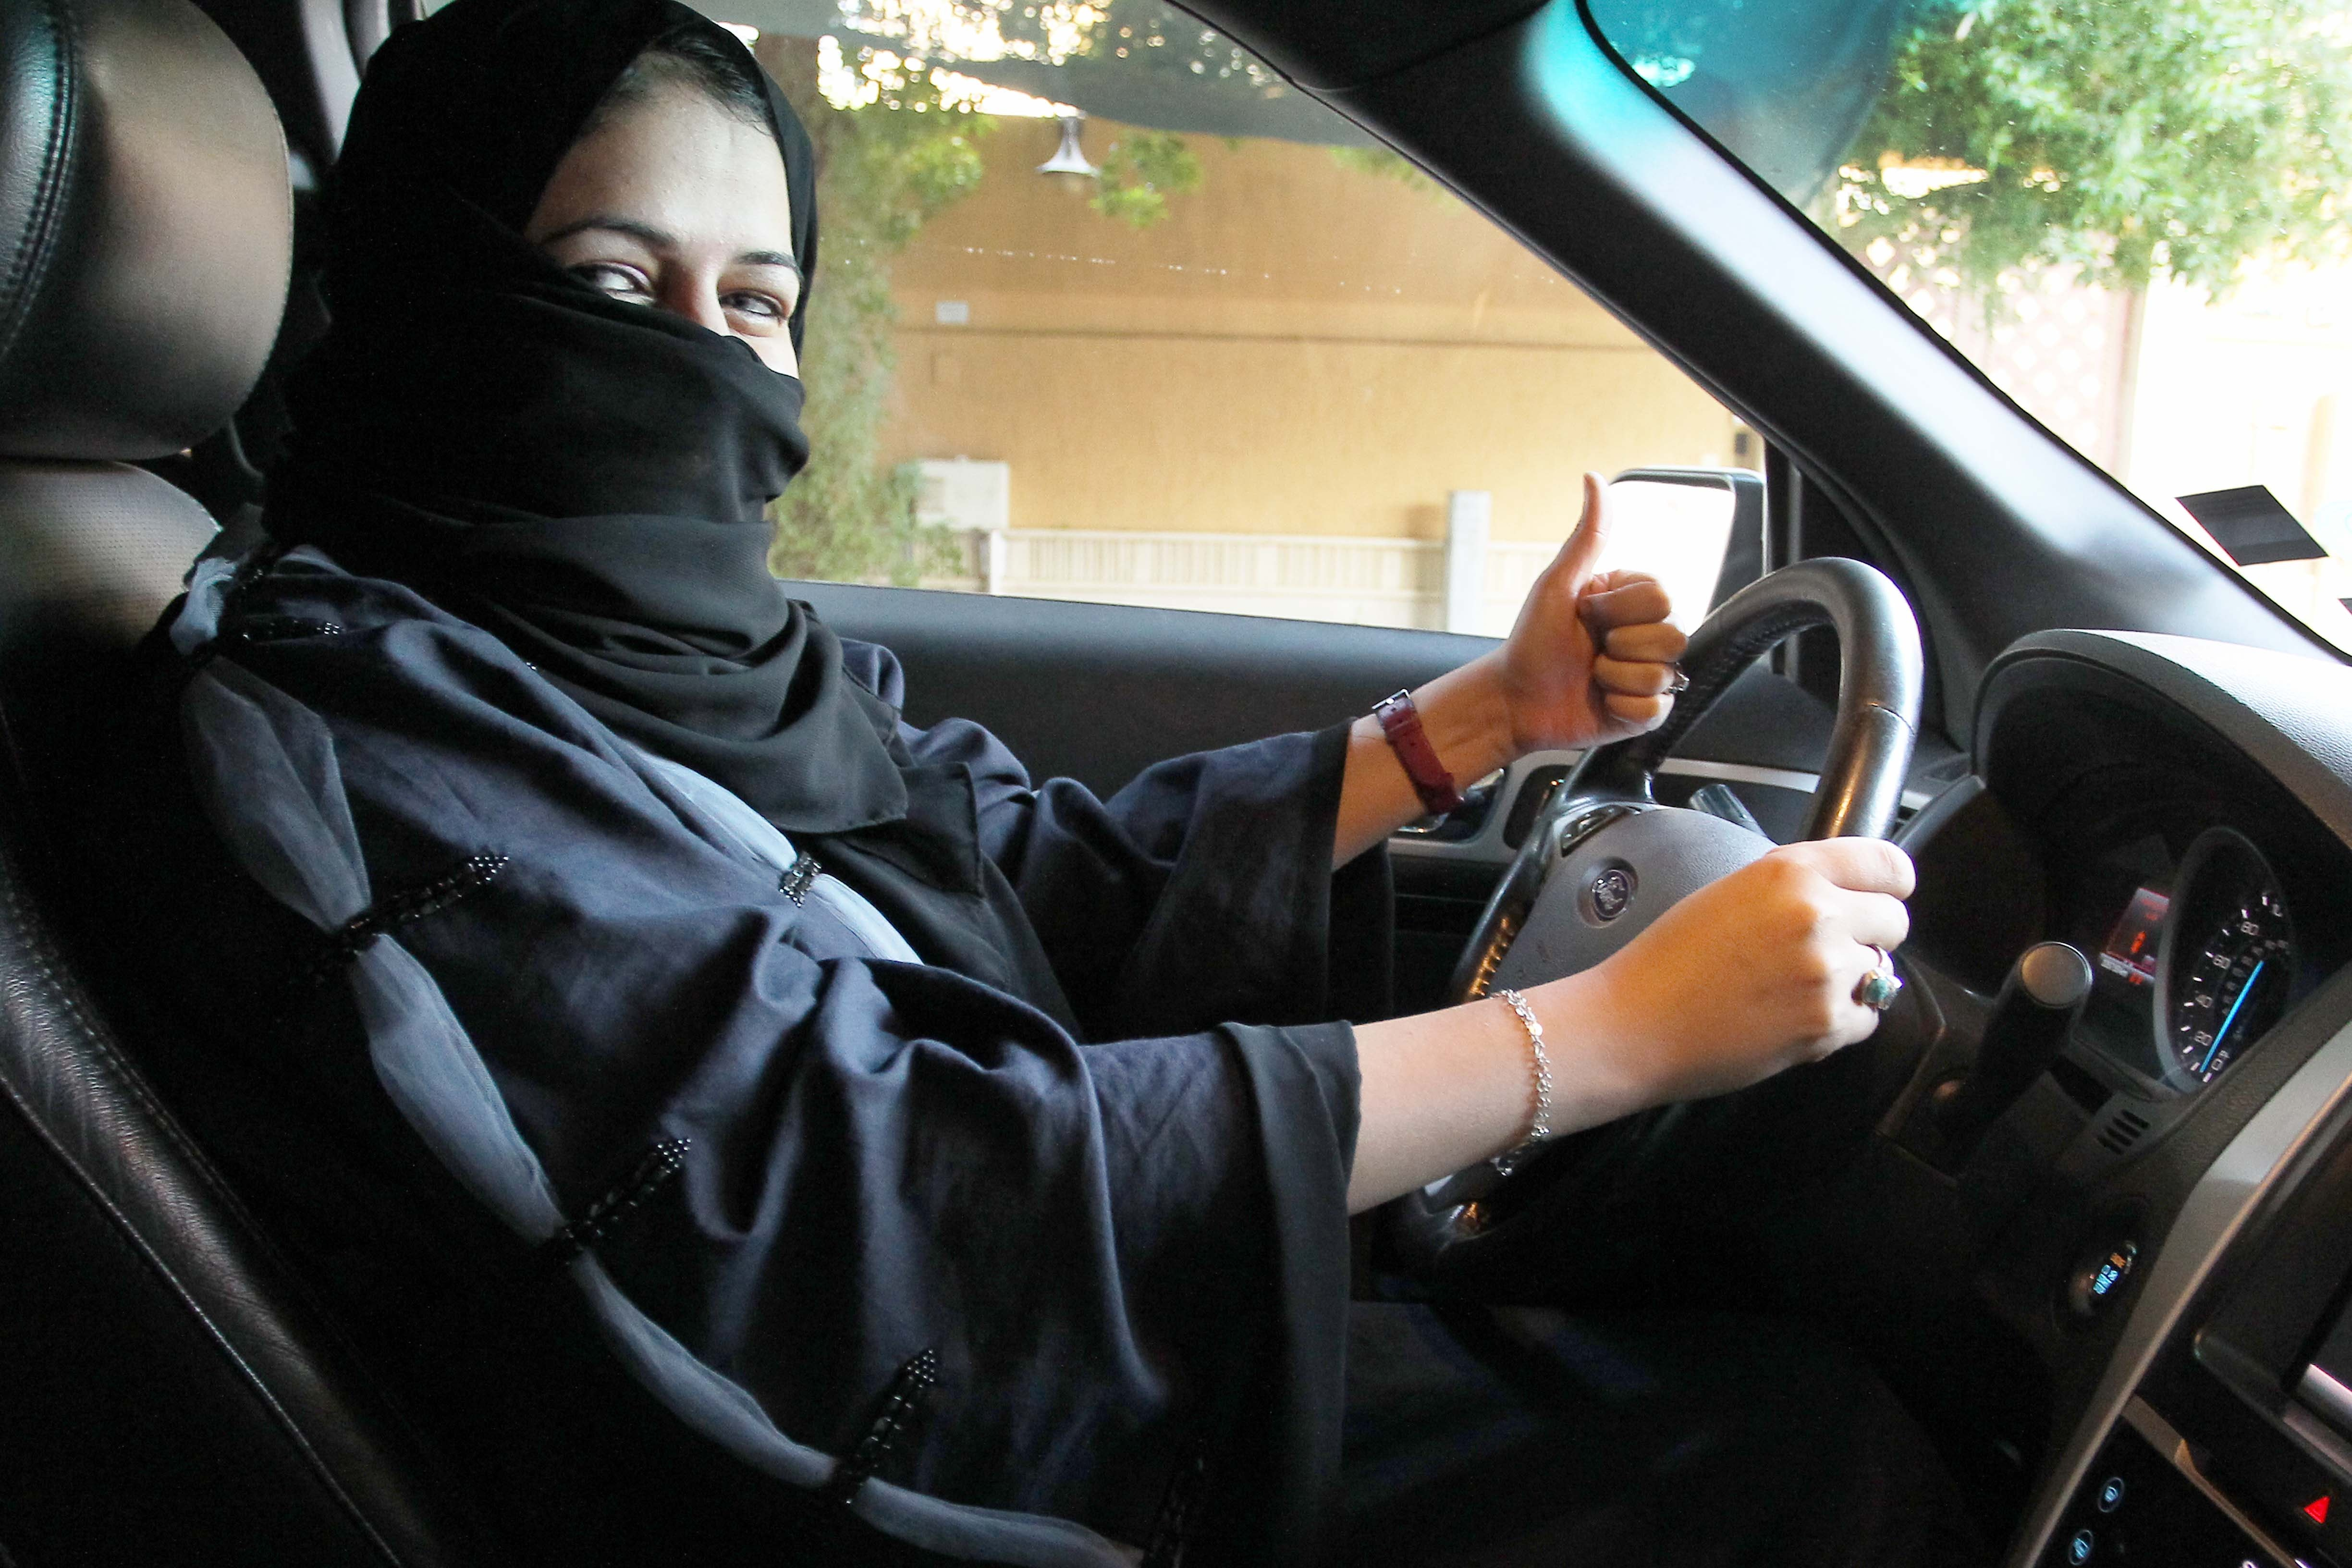 The Real Reason Saudi Arabia Lifted Its Ban On Women Driving